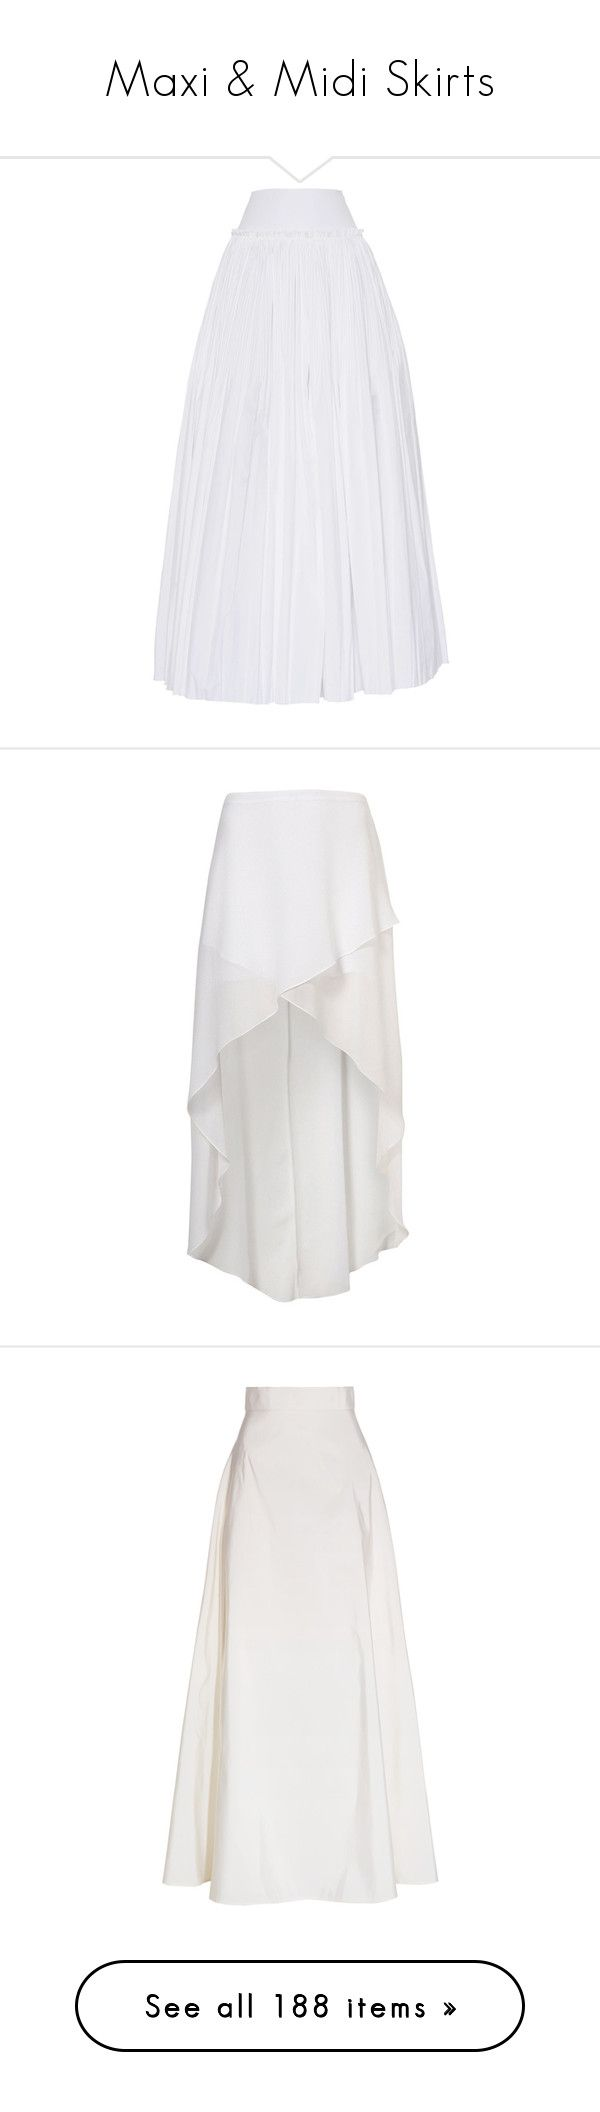 """""""Maxi & Midi Skirts"""" by jewelsinthecrown ❤ liked on Polyvore featuring skirts, maxi skirt, white, white pleated skirt, long pleated skirt, ankle length skirts, flounce skirt, pleated maxi skirt, bottoms and saias"""